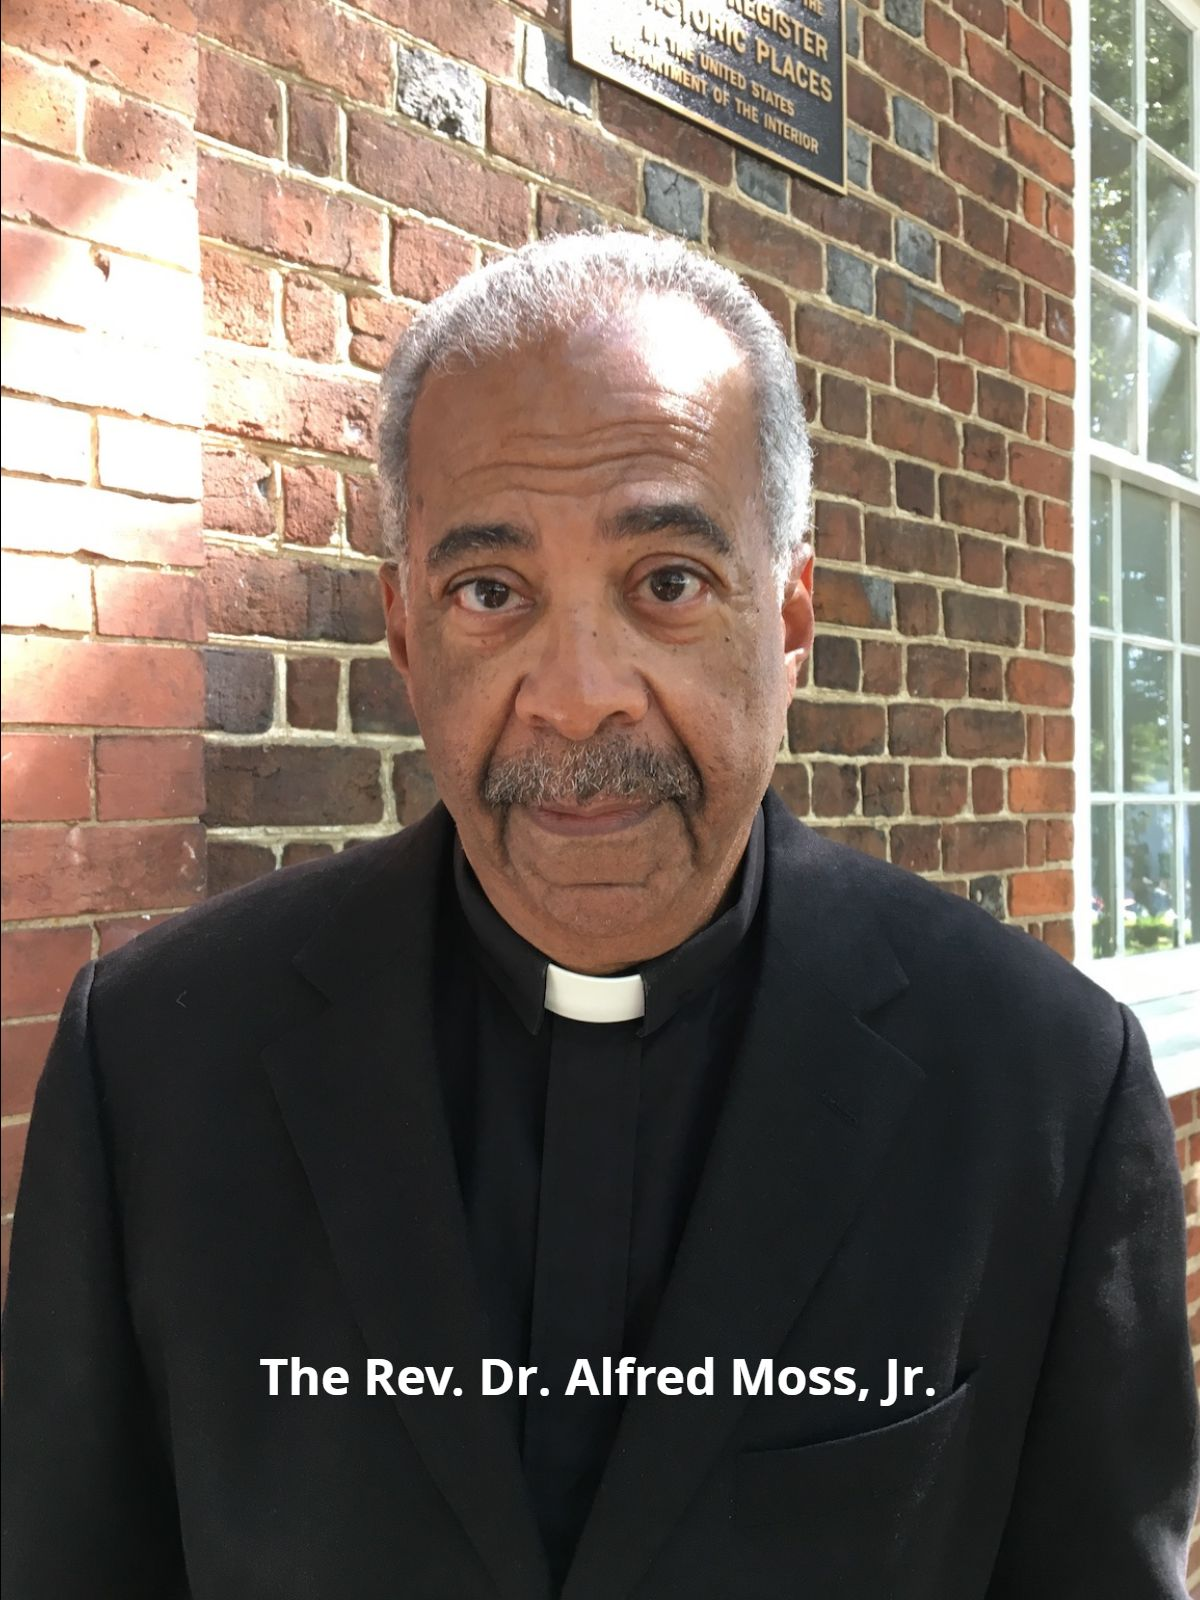 The Rev. Dr. Al Moss